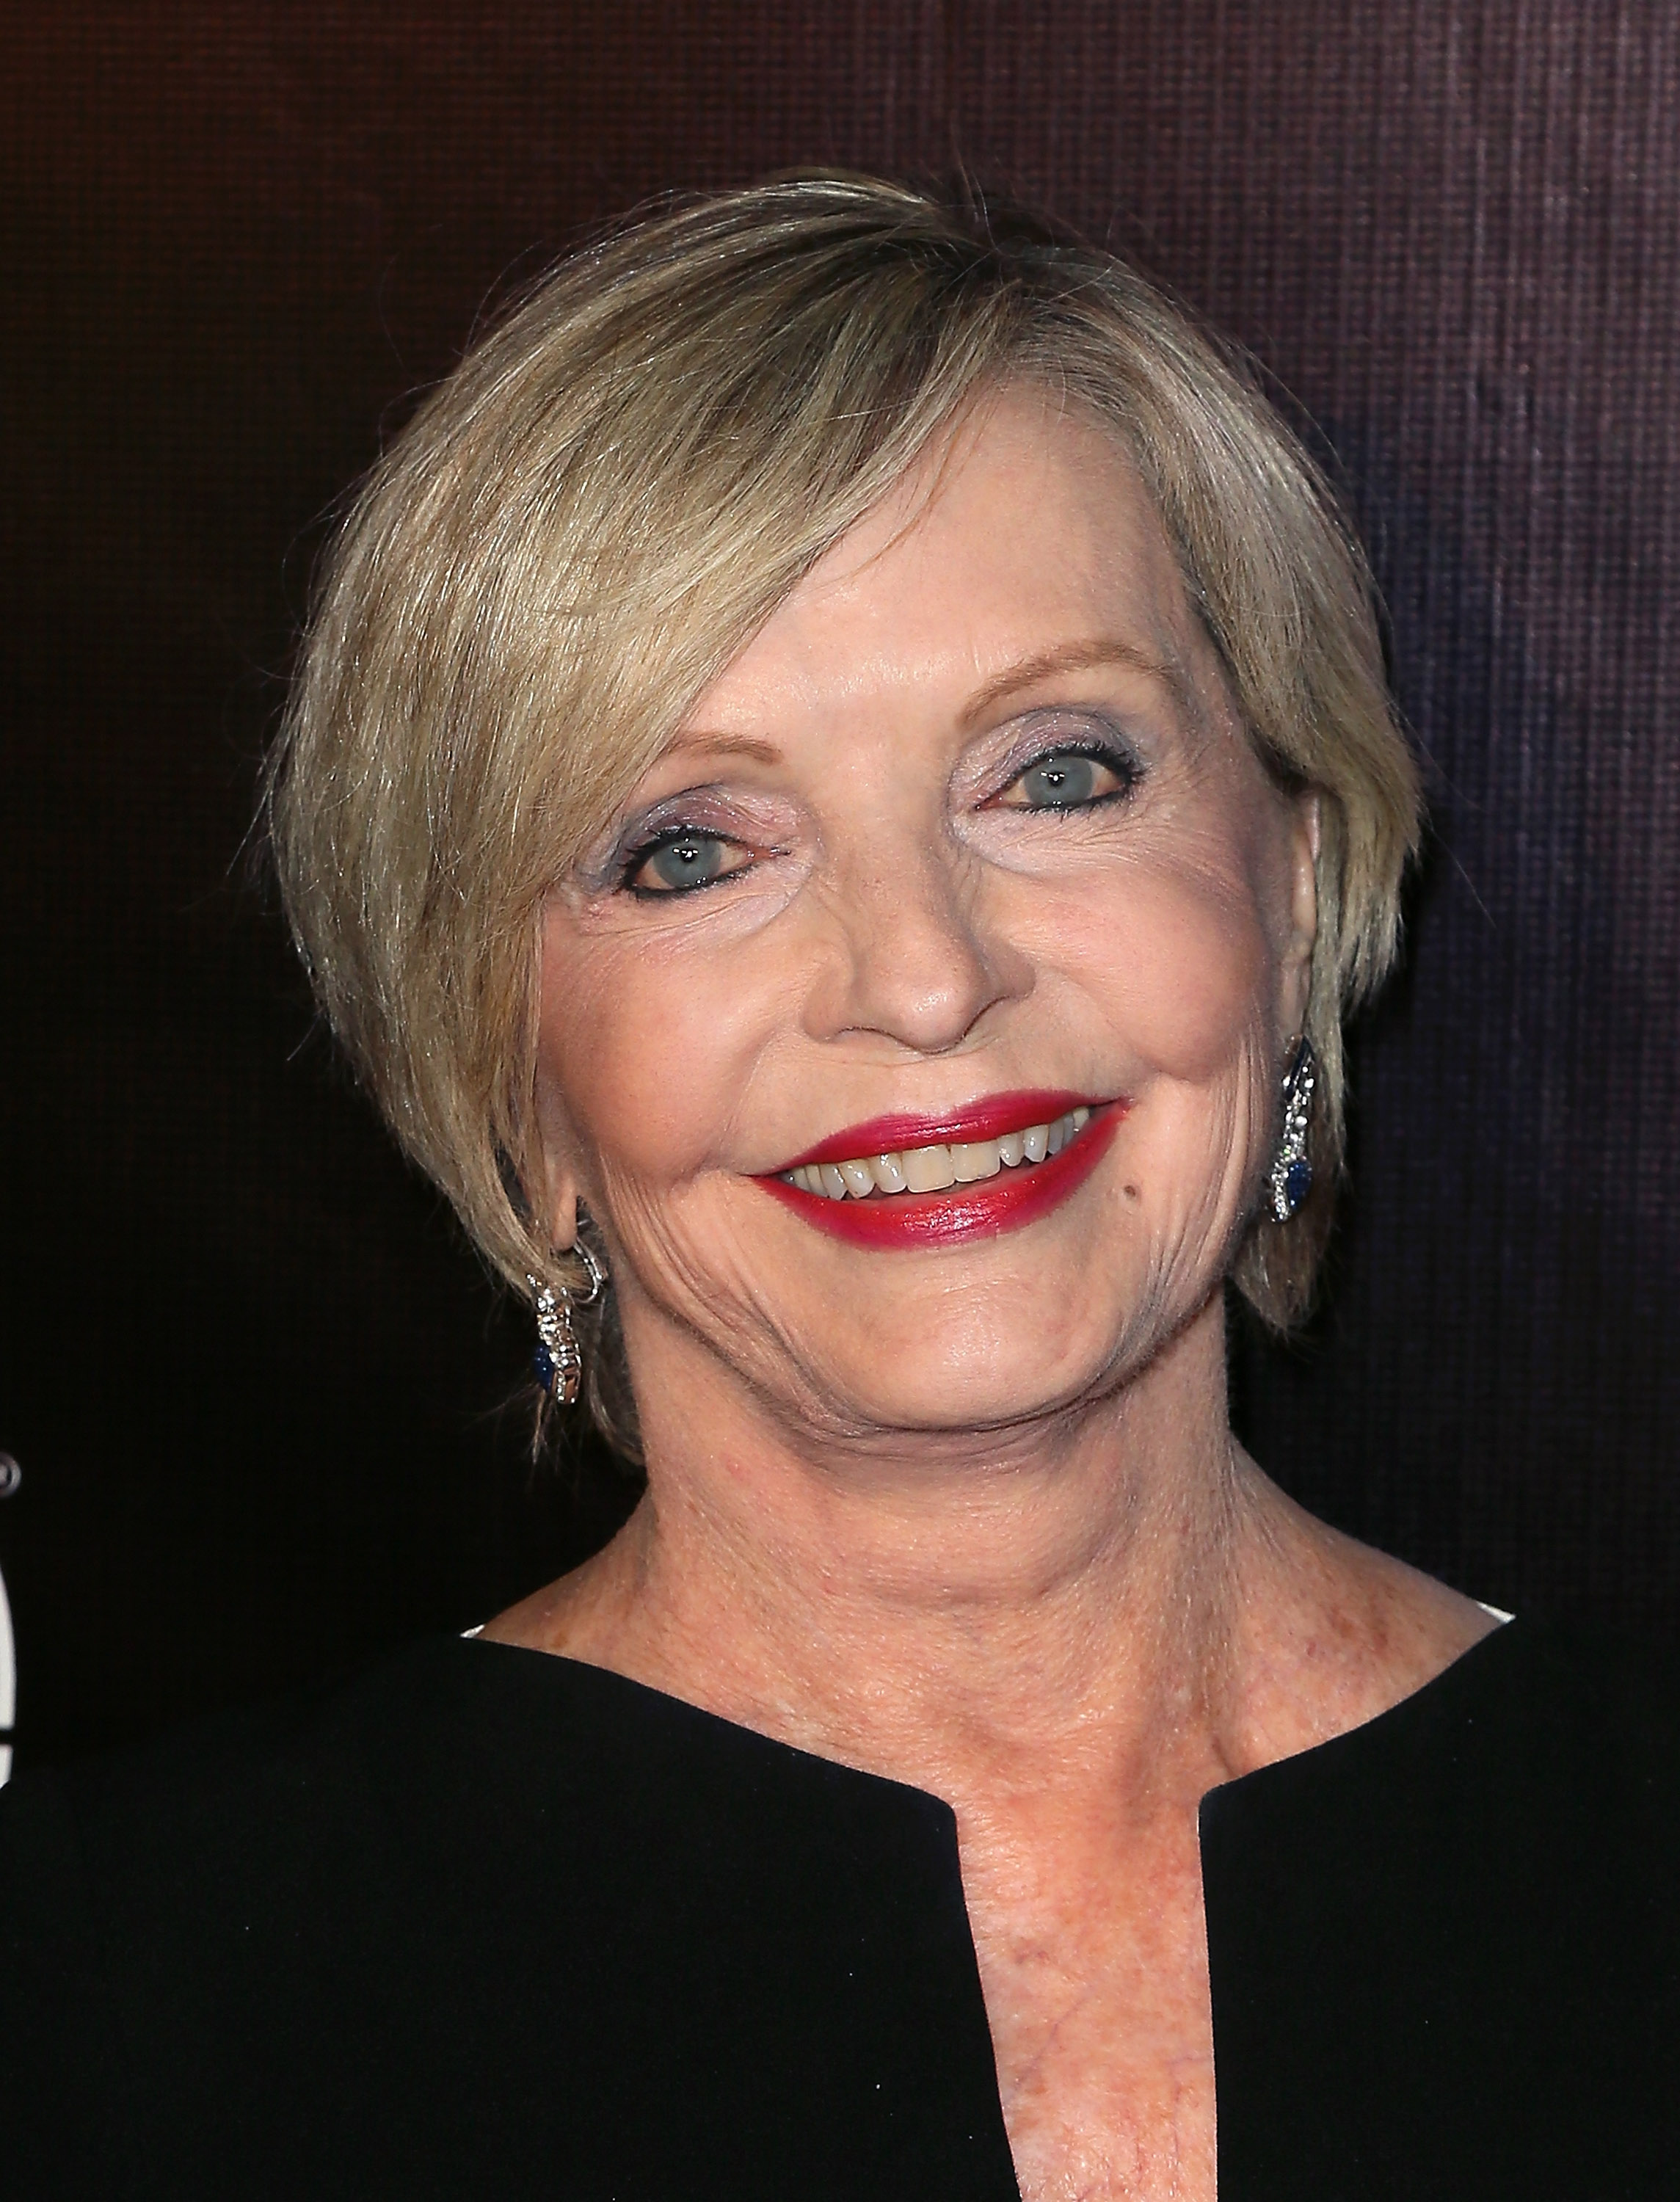 Actress Florence Henderson attends the 10th anniversary of ABC's  Dancing with the Stars  at Greystone Manor on April 21, 2015 in West Hollywood, Calif.